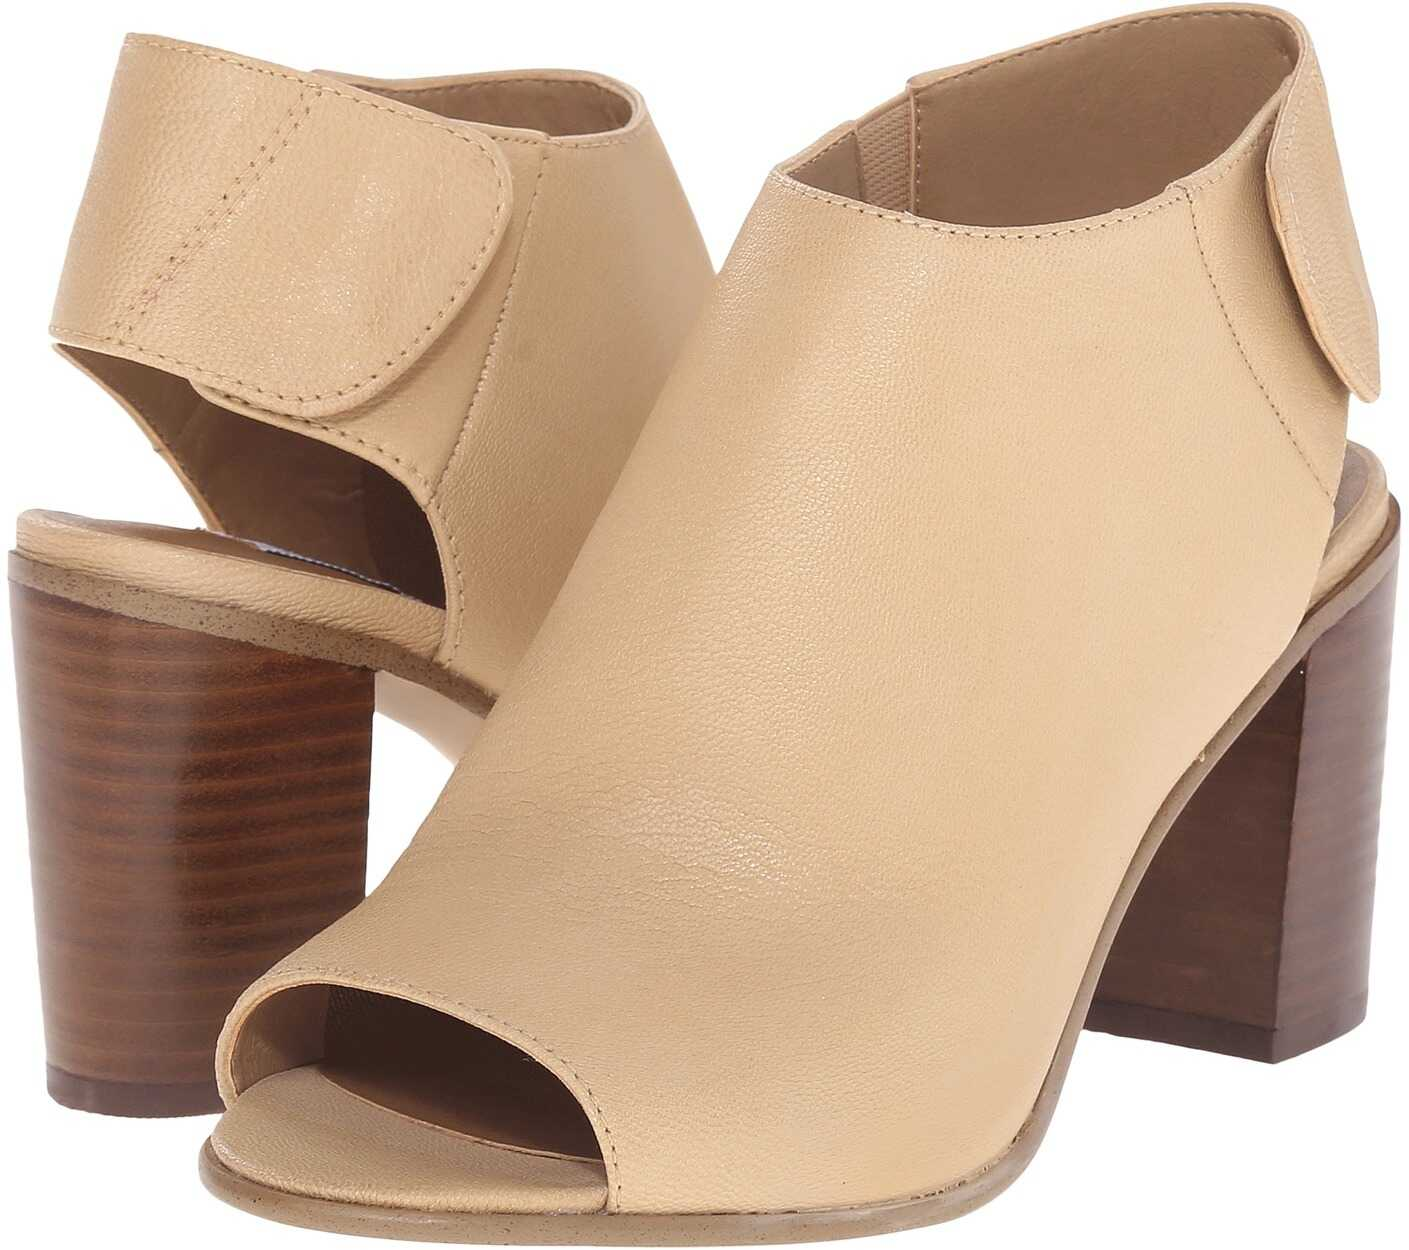 Steve Madden Nonstp Heel Natural Leather